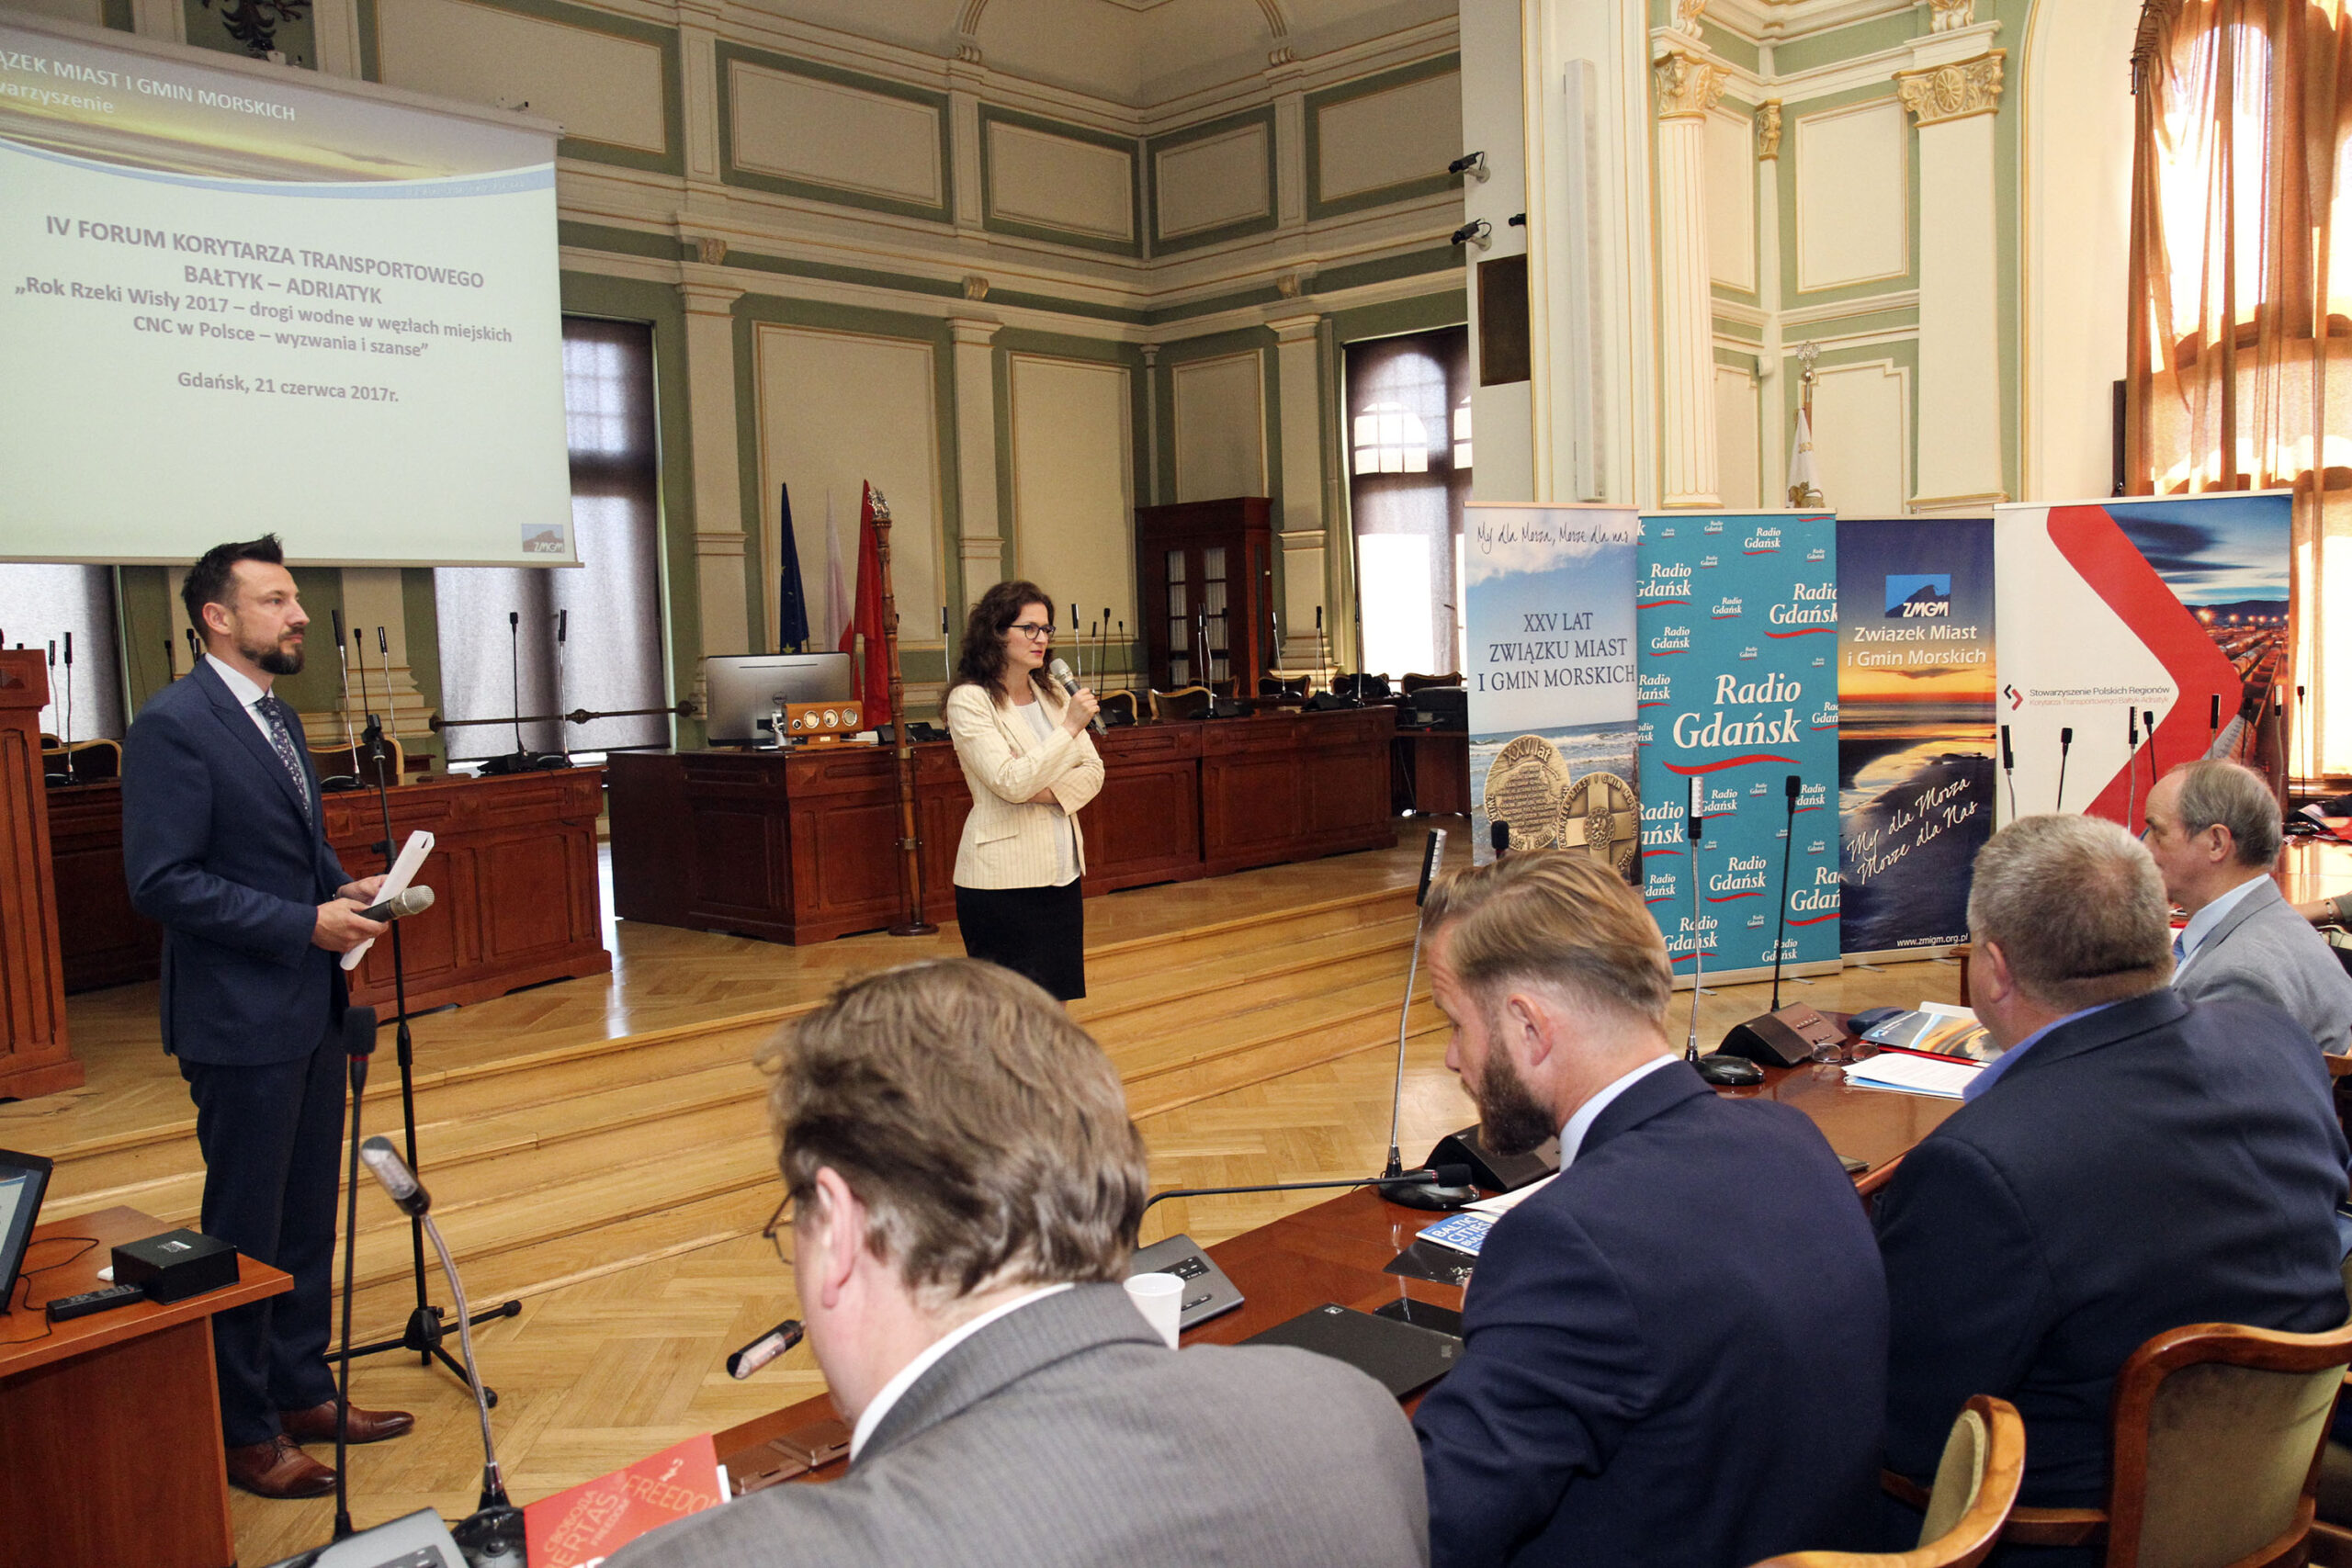 INLAND WATER TRANSPORT AT THE 4TH FORUM ON THE BALTIC-ADRIATIC TRANSPORT CORRIDOR